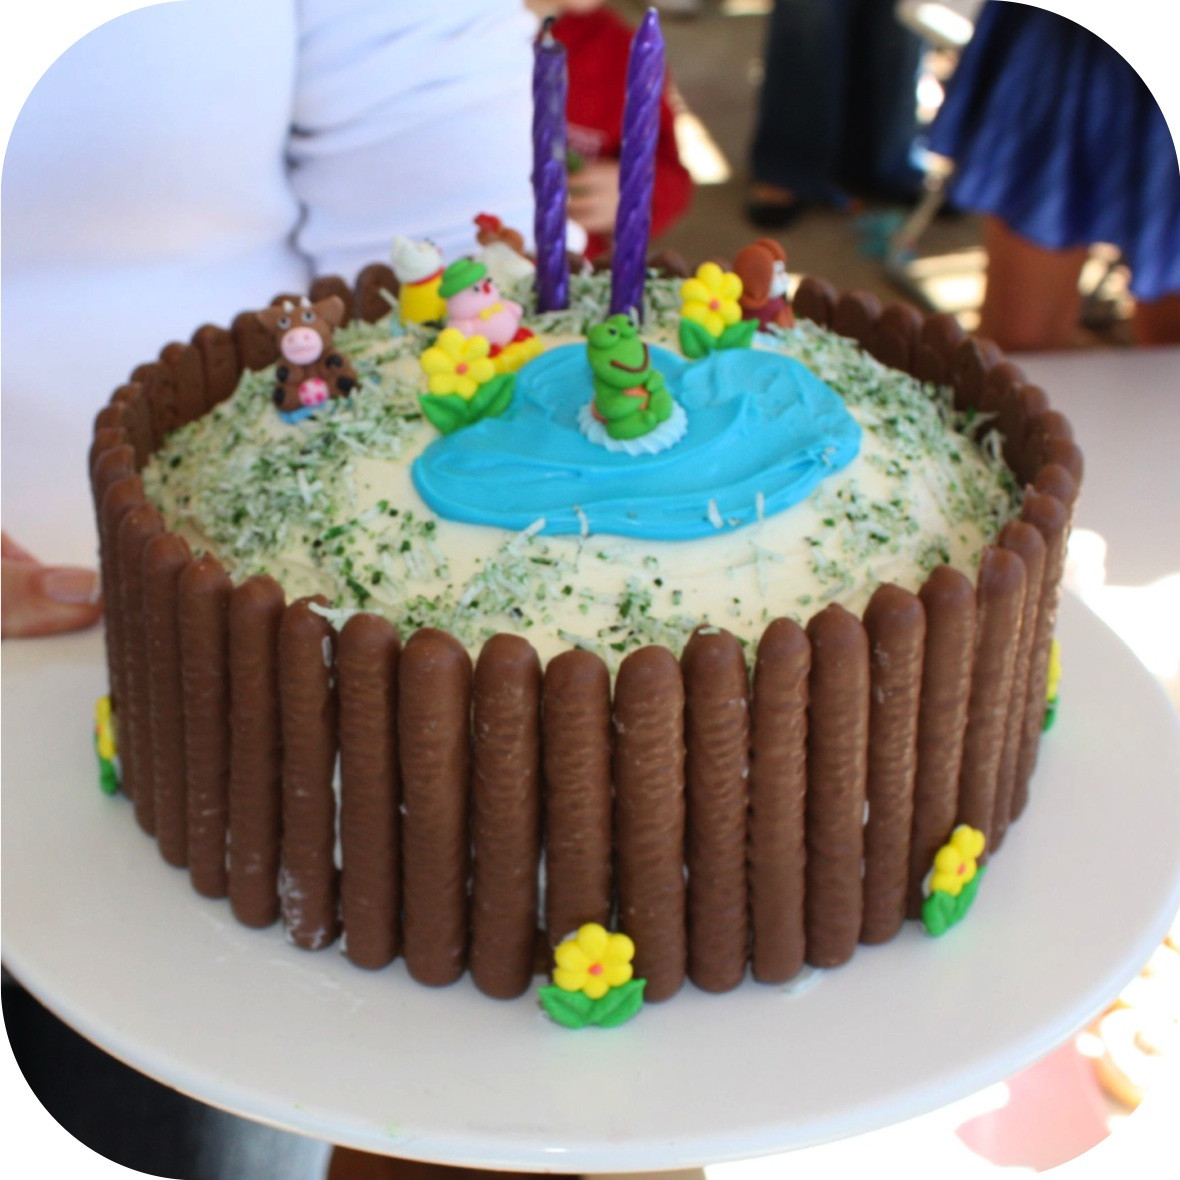 Easy Birthday Cake  Quick and simple kids birthday cake ee i ee i oh